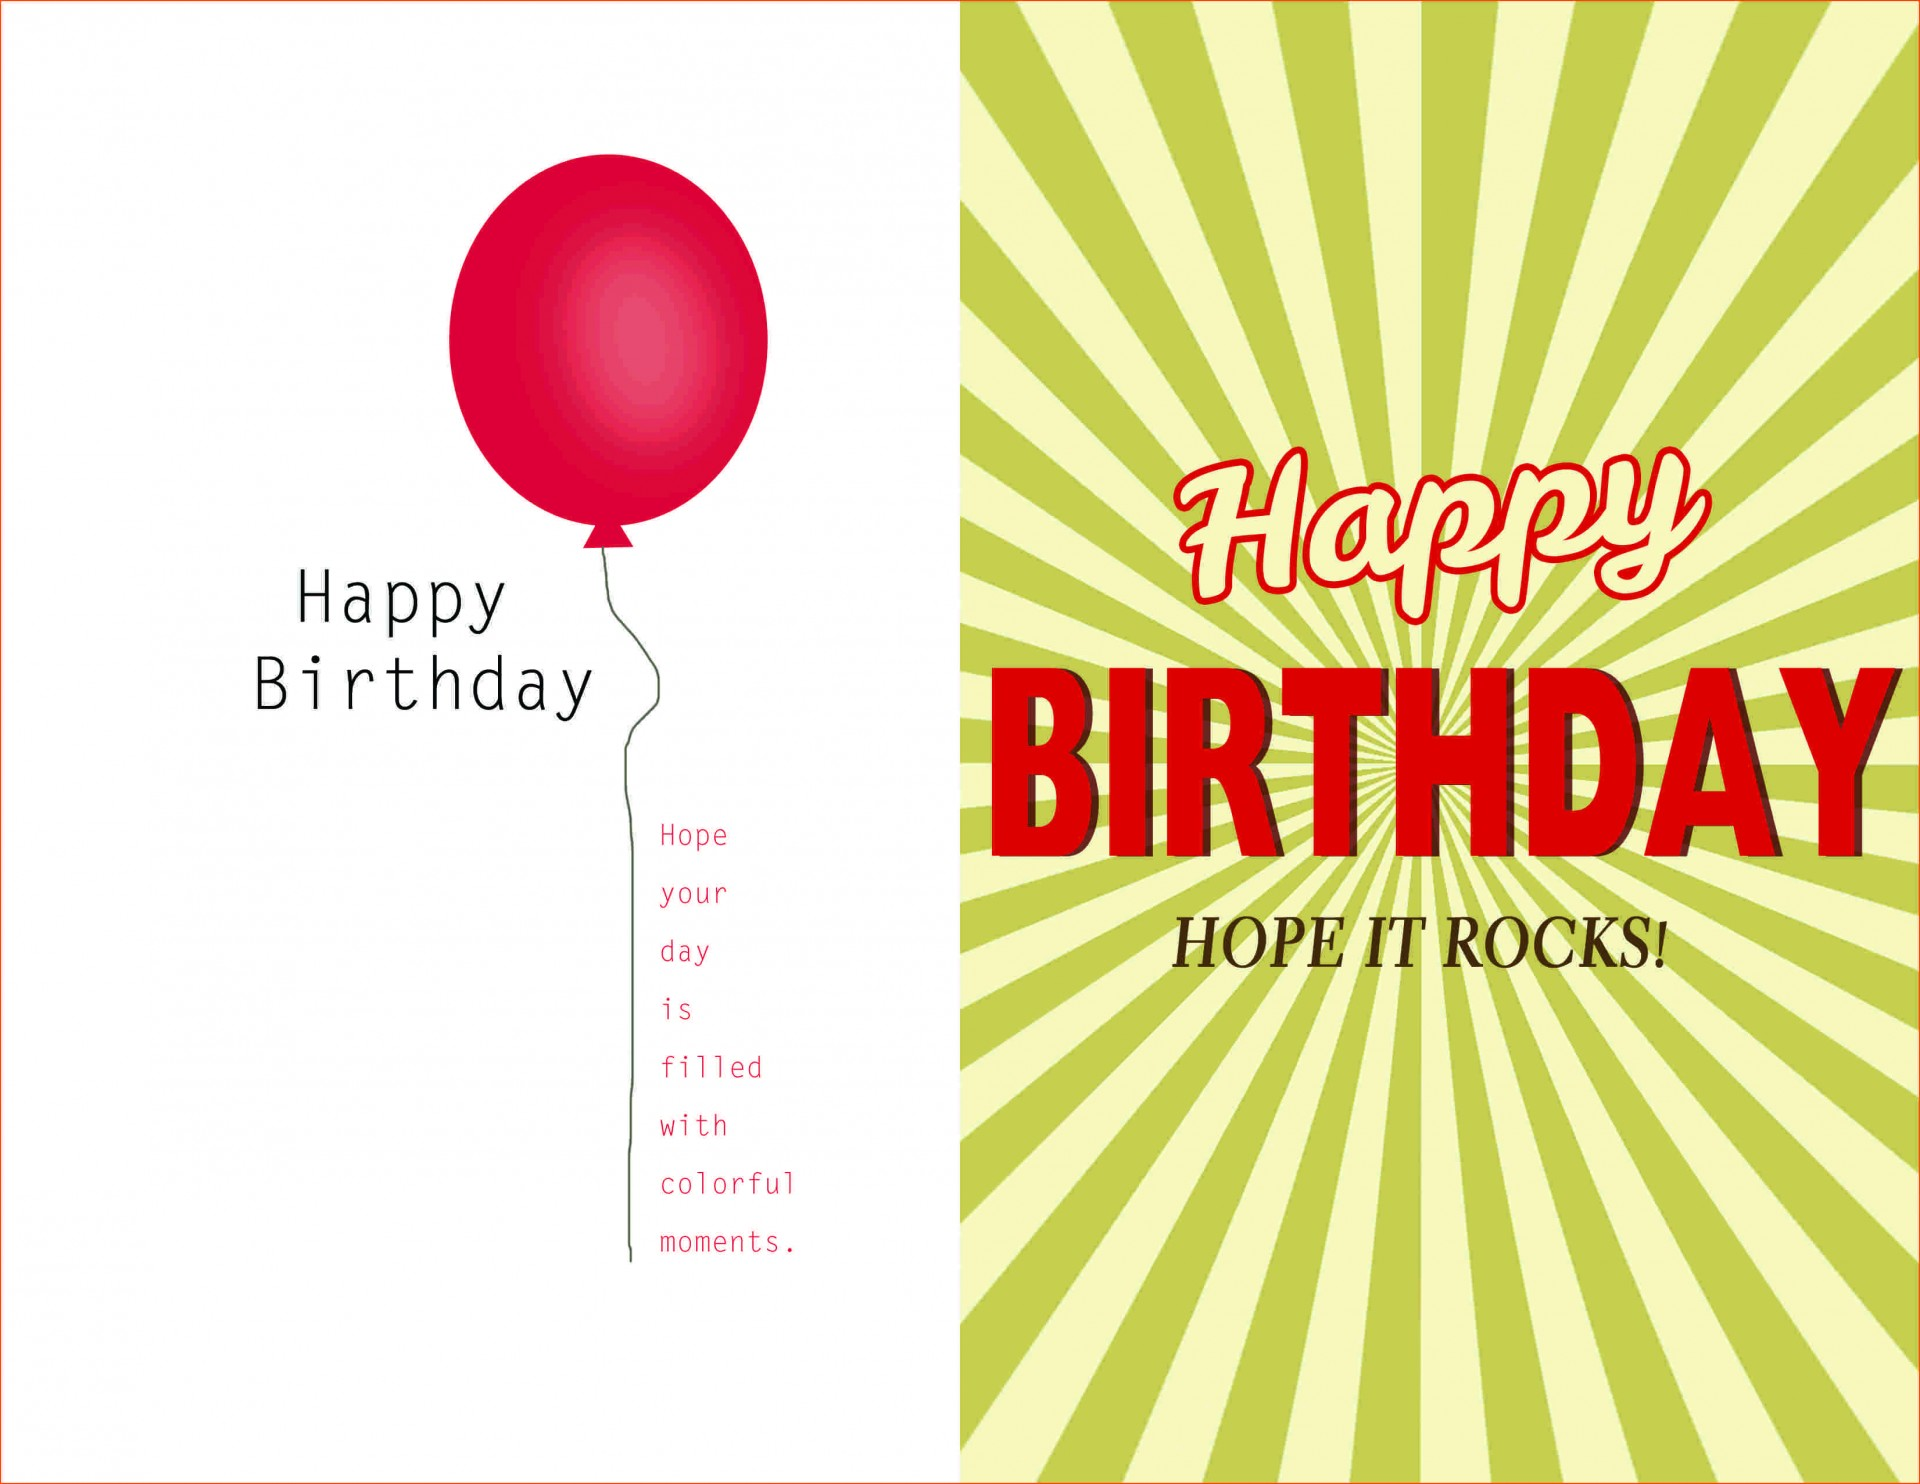 002 Magnificent Birthday Card Template Word Quarter Fold Picture 1920